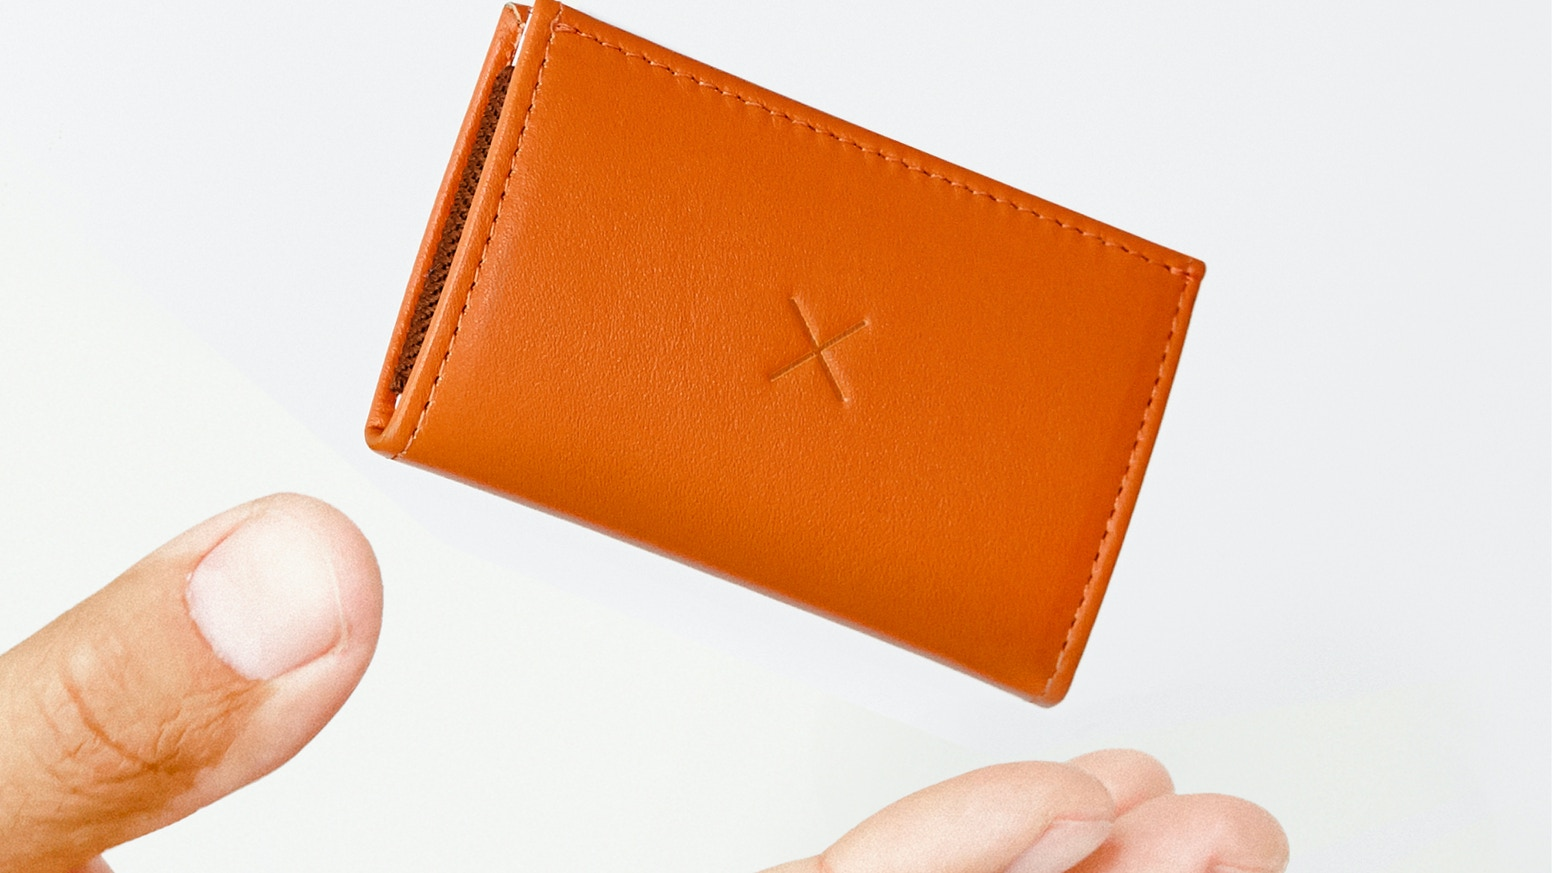 Slim 2 wallet is a beautifully simple, super-thin, card-carrying over-achiever. Designed for minimalists.